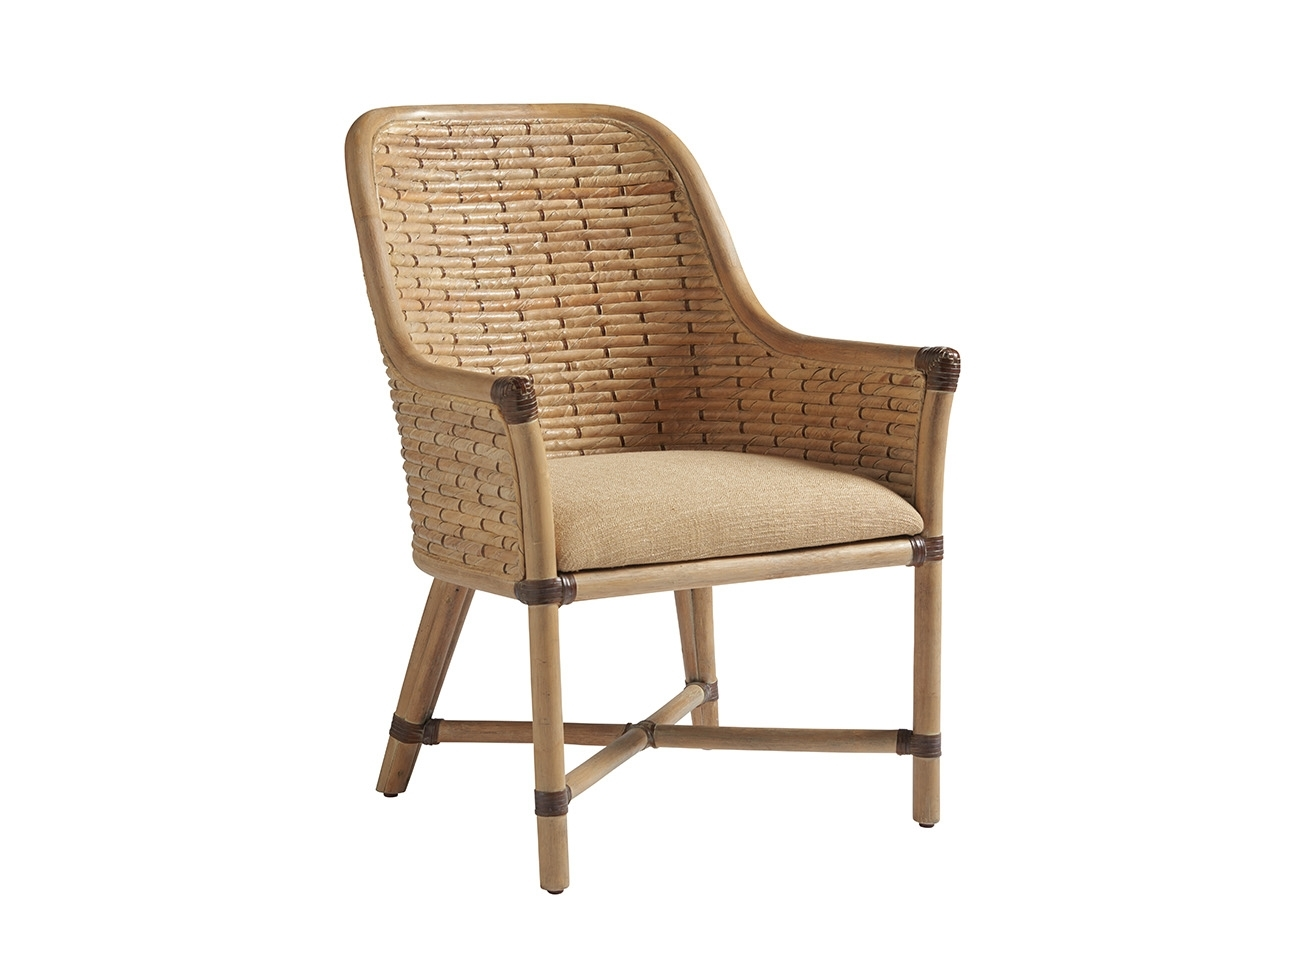 Most Recent Candice Ii Slat Back Host Chairs Inside Product List (View 13 of 20)